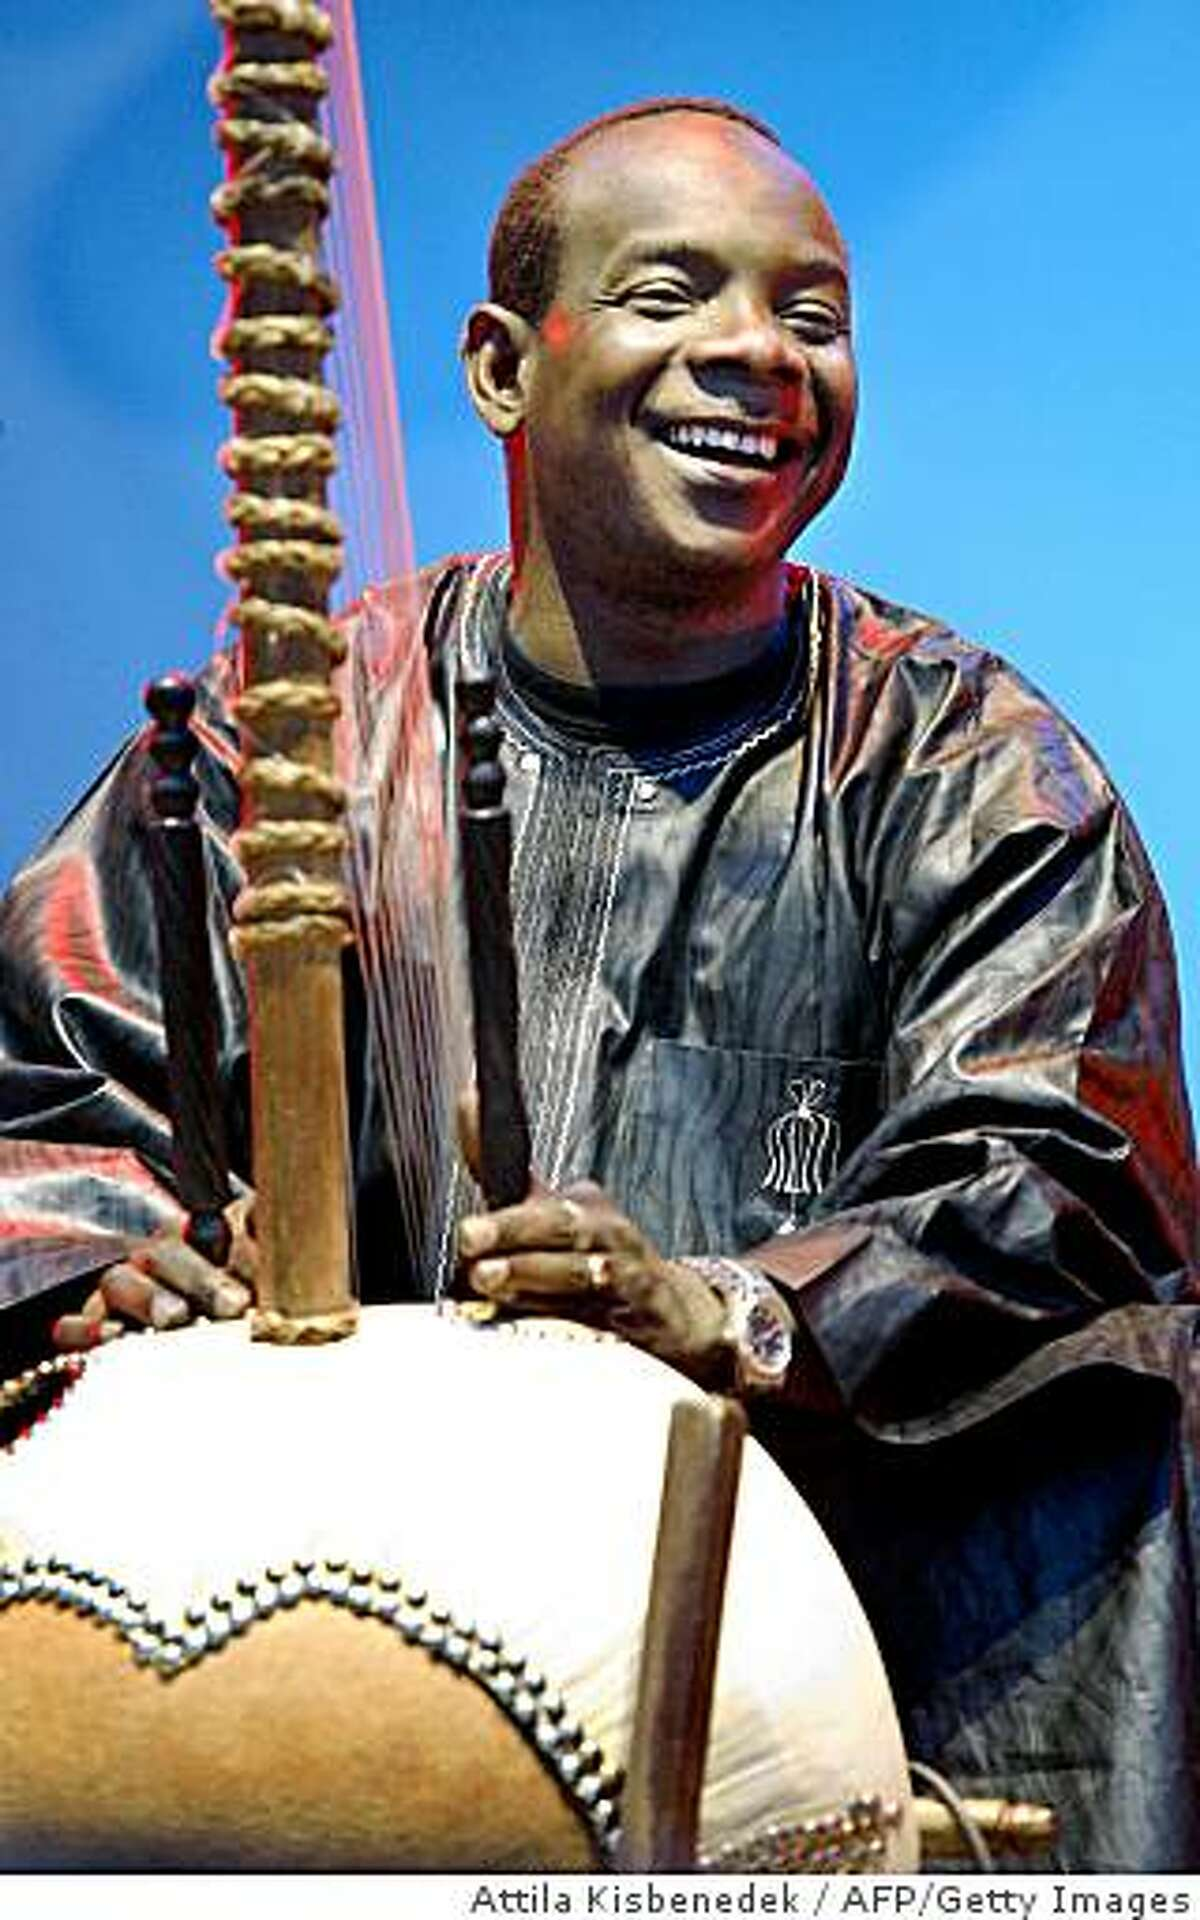 Budapest, HUNGARY: Toumani Diabate of Mali plays on his kora, an African harp on the 'World Music' stage of Island Festival in Hajogyar Island of Budapest, late 11 August 2006. With 550 concerts on 66 stages over seven days, featuring everything from pop to gypsy music, the yearly 14th Sziget Festival is expecting to draw some 400,000 music lovers to converge on an island in the middle of the Danube river, in the heart of Budapest from 09 August to 16 August. AFP PHOTO ATTILA KISBENEDEK (Photo credit should read ATTILA KISBENEDEK/AFP/Getty Images)